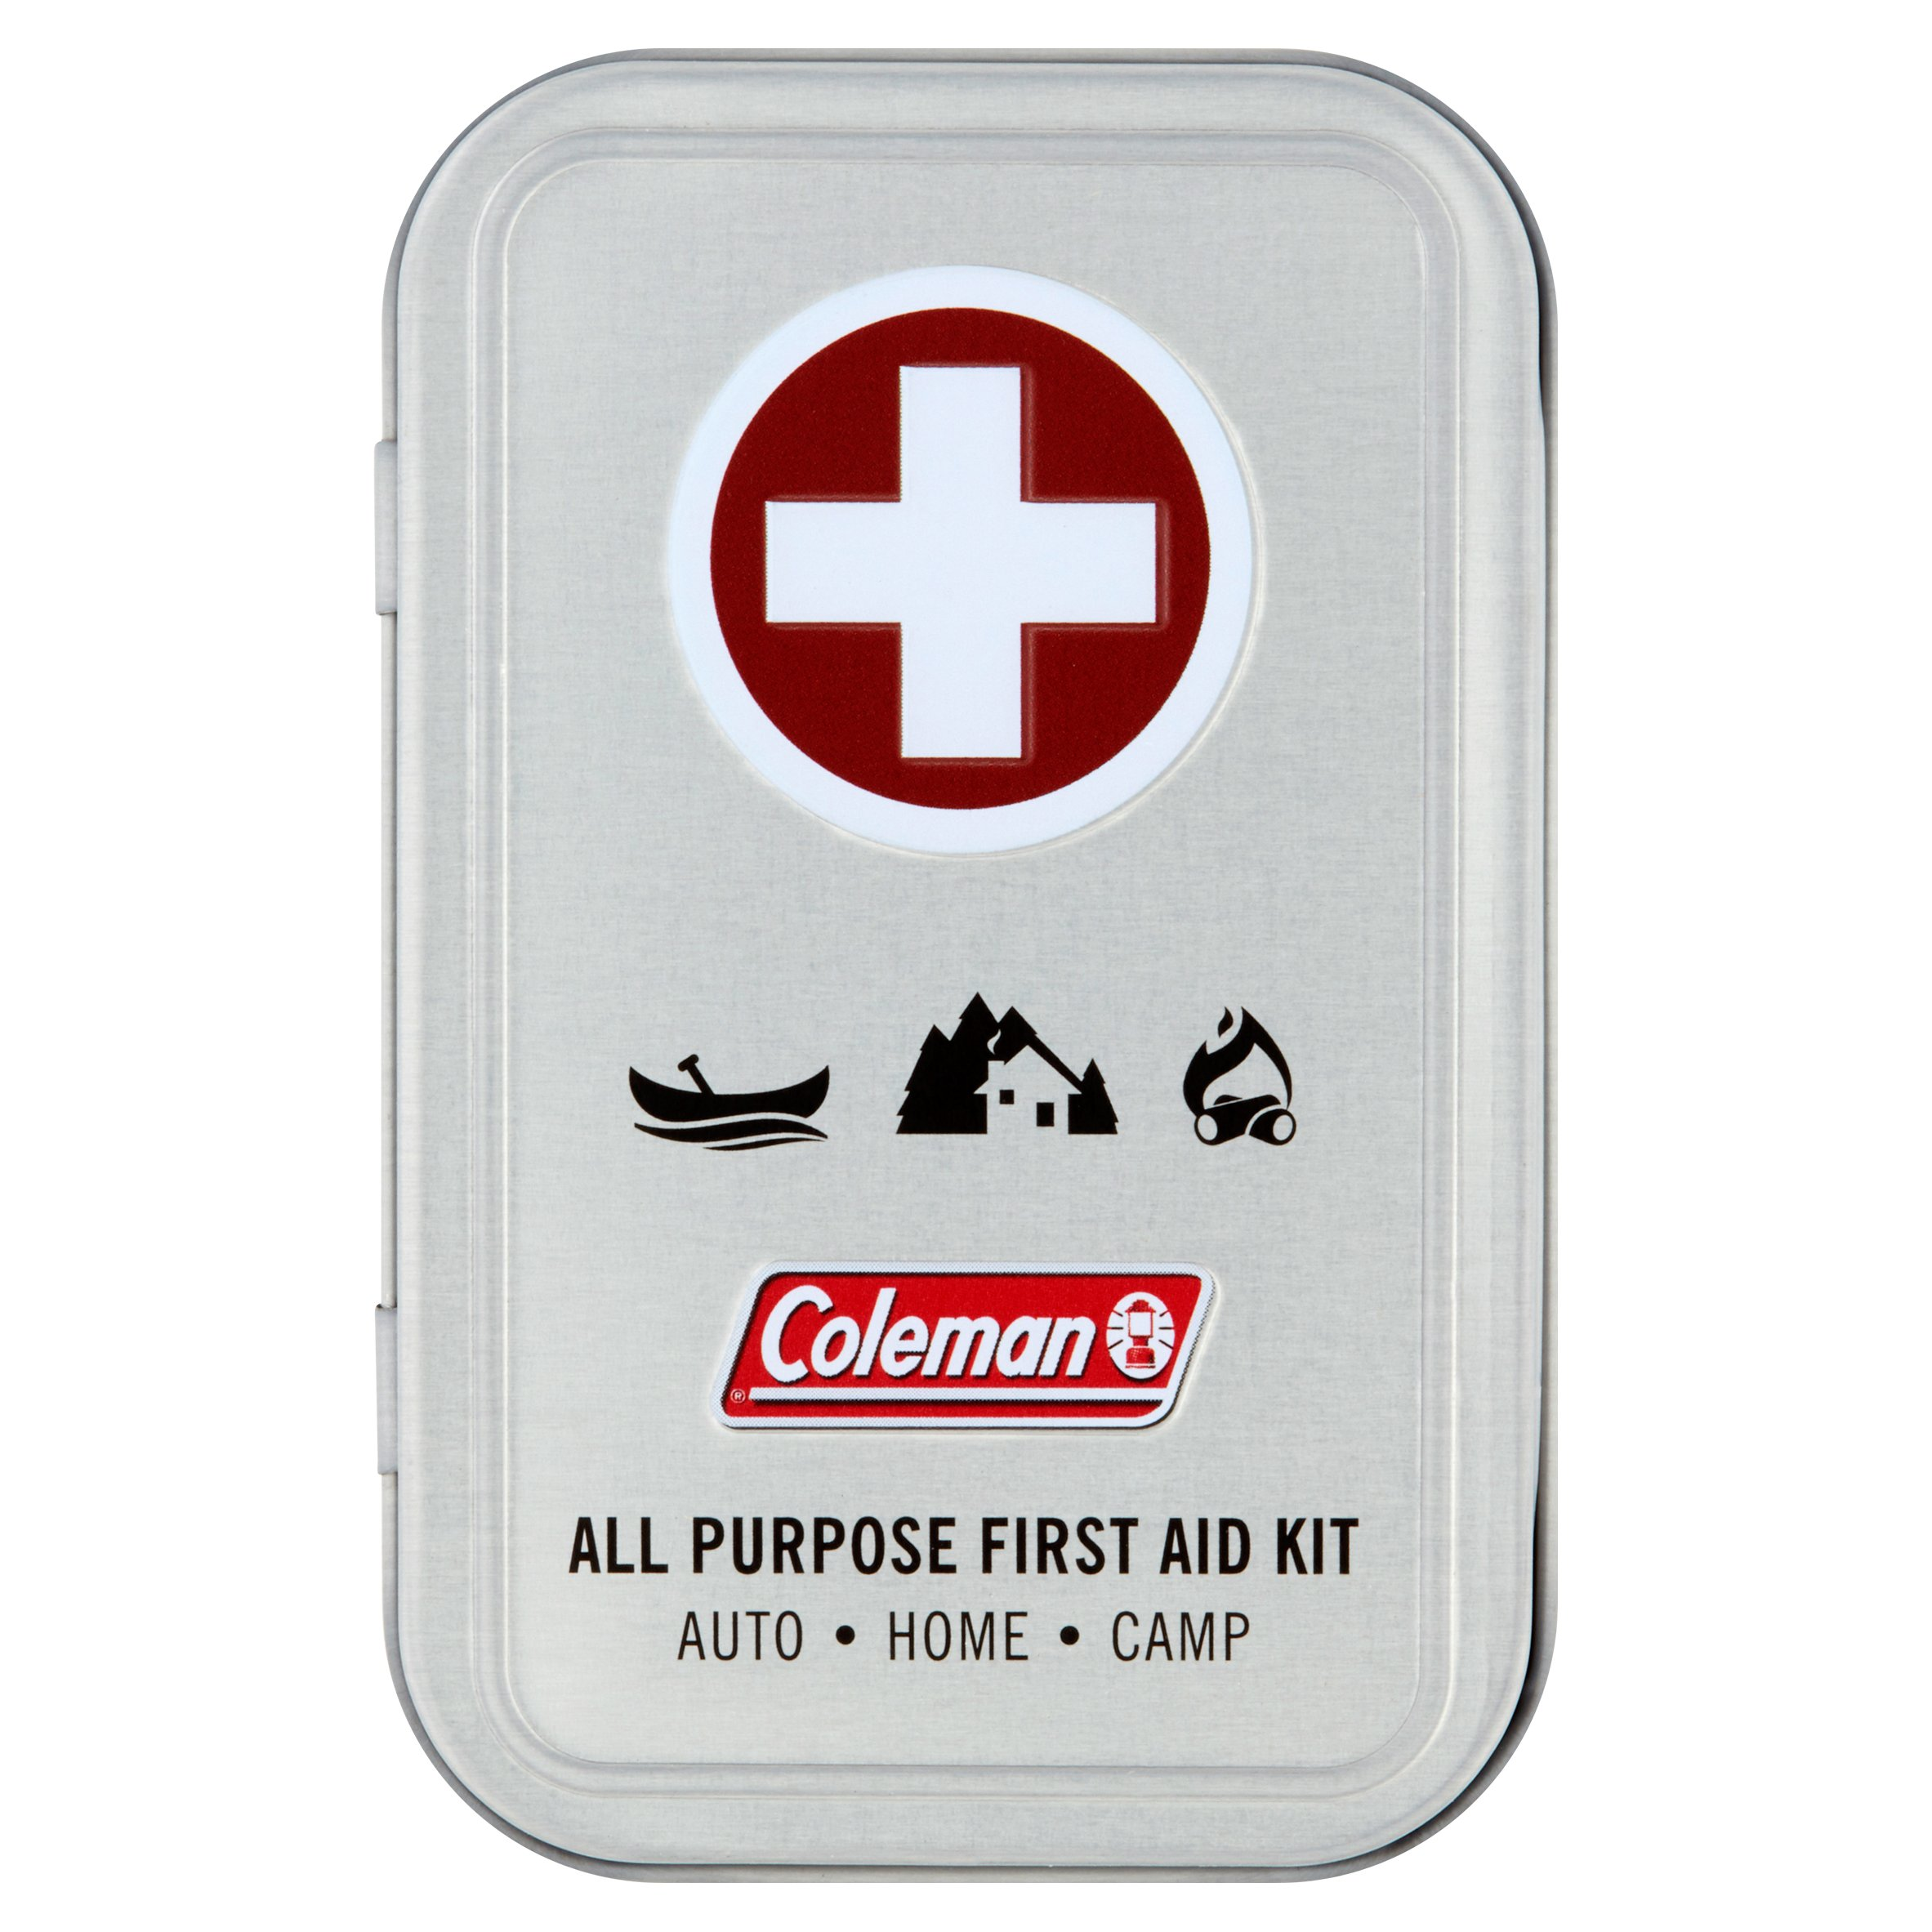 Coleman All Purpose First Aid Kit, 27 count